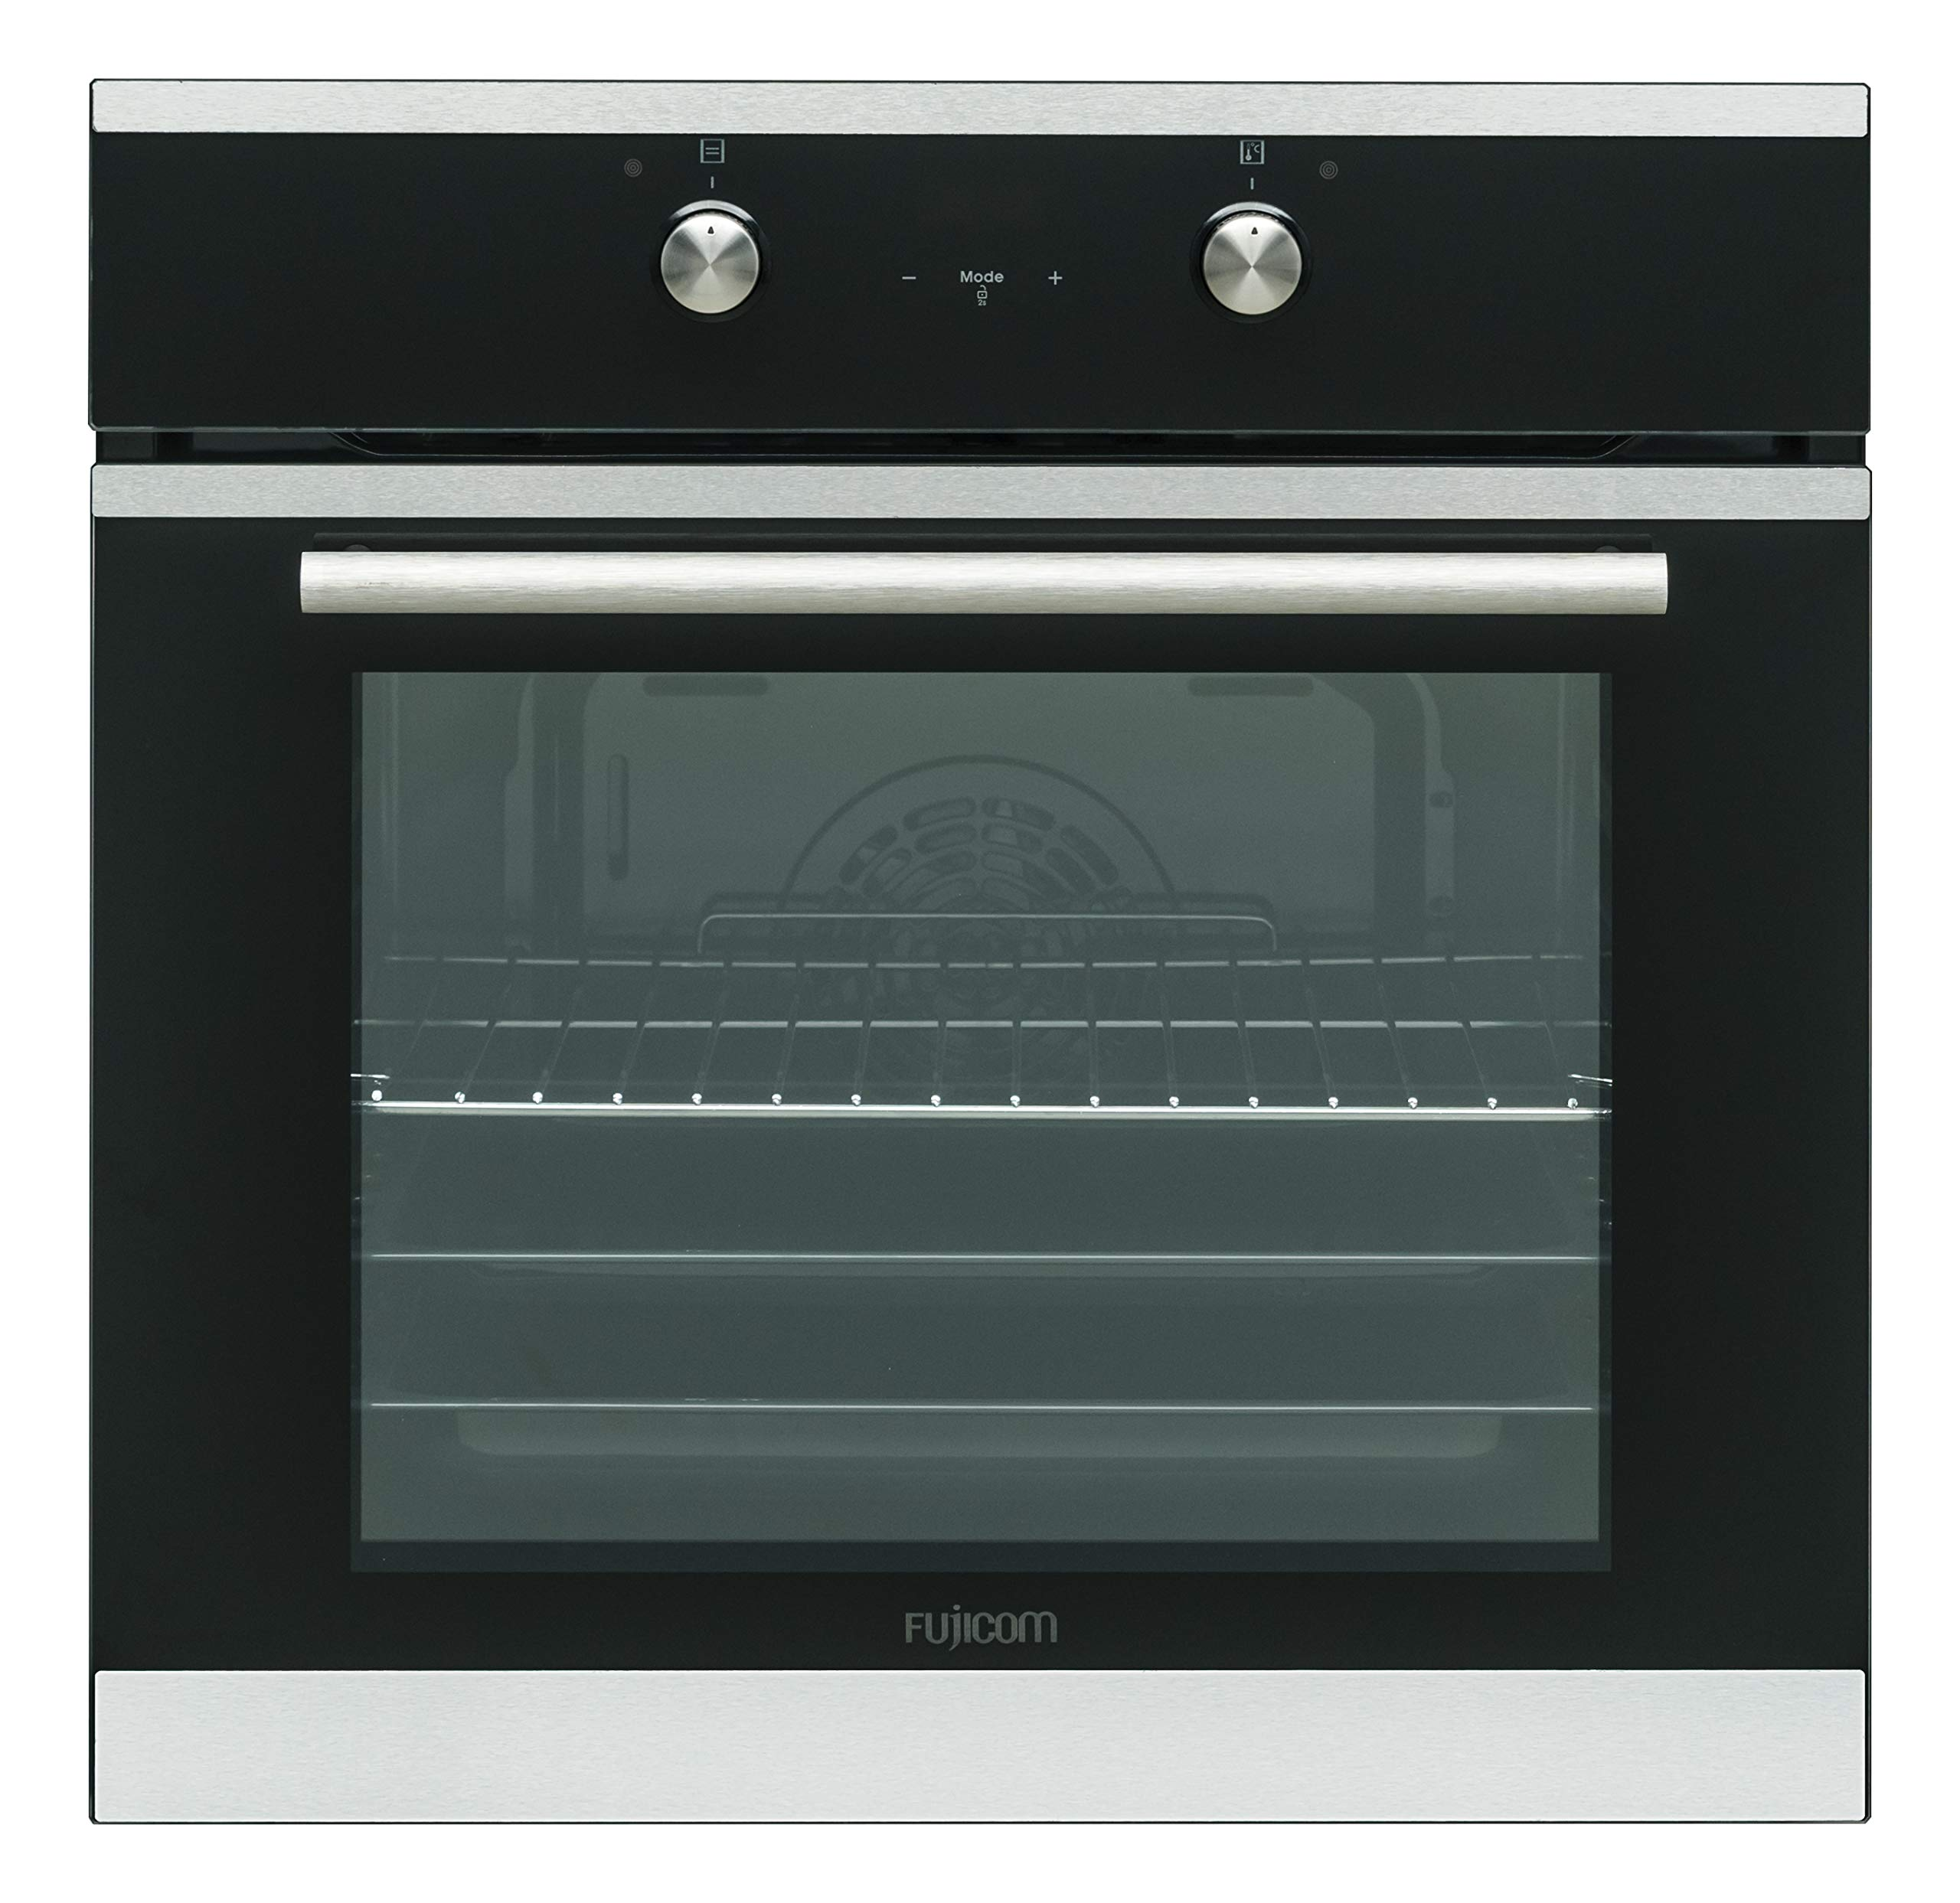 FUJICOM 65-L Built-in Oven - 9 Programs Including Active Turbo - Perfect for Cooking Baking & Grilling - Smooth Enamel Coating & Pop-Out Power Buttons for Easy Cleanup by FUJICOM